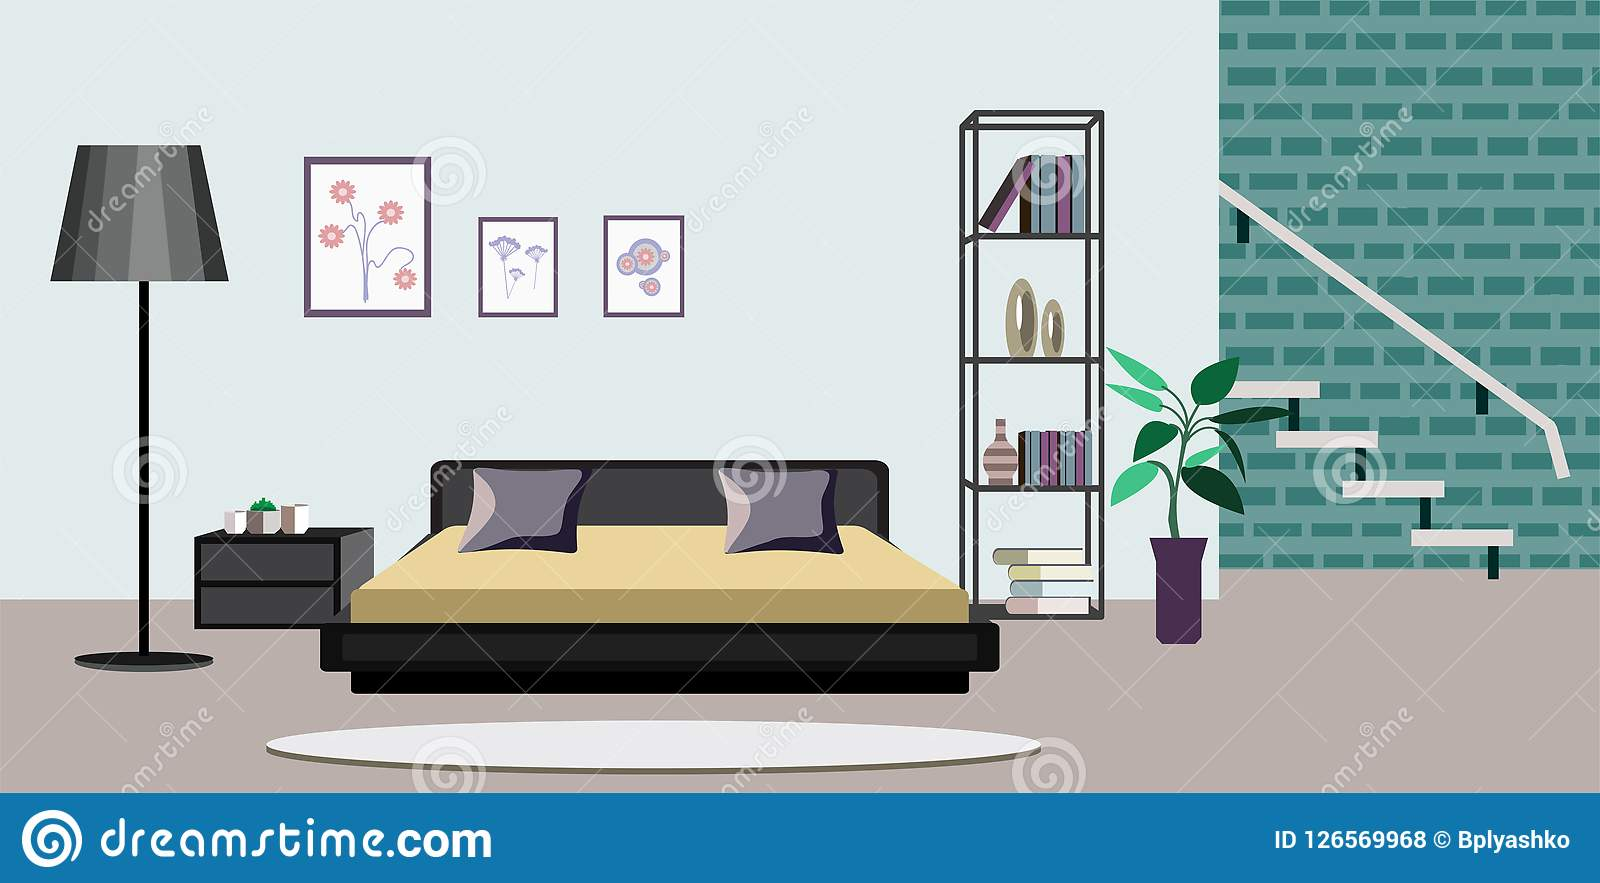 Room Interior Vector Illustration Of Old Or Modern Apartments Living Room With Furniture Flat Cartoon Banners Design With Sofa Stock Vector Illustration Of Houseplants Apartment 126569968